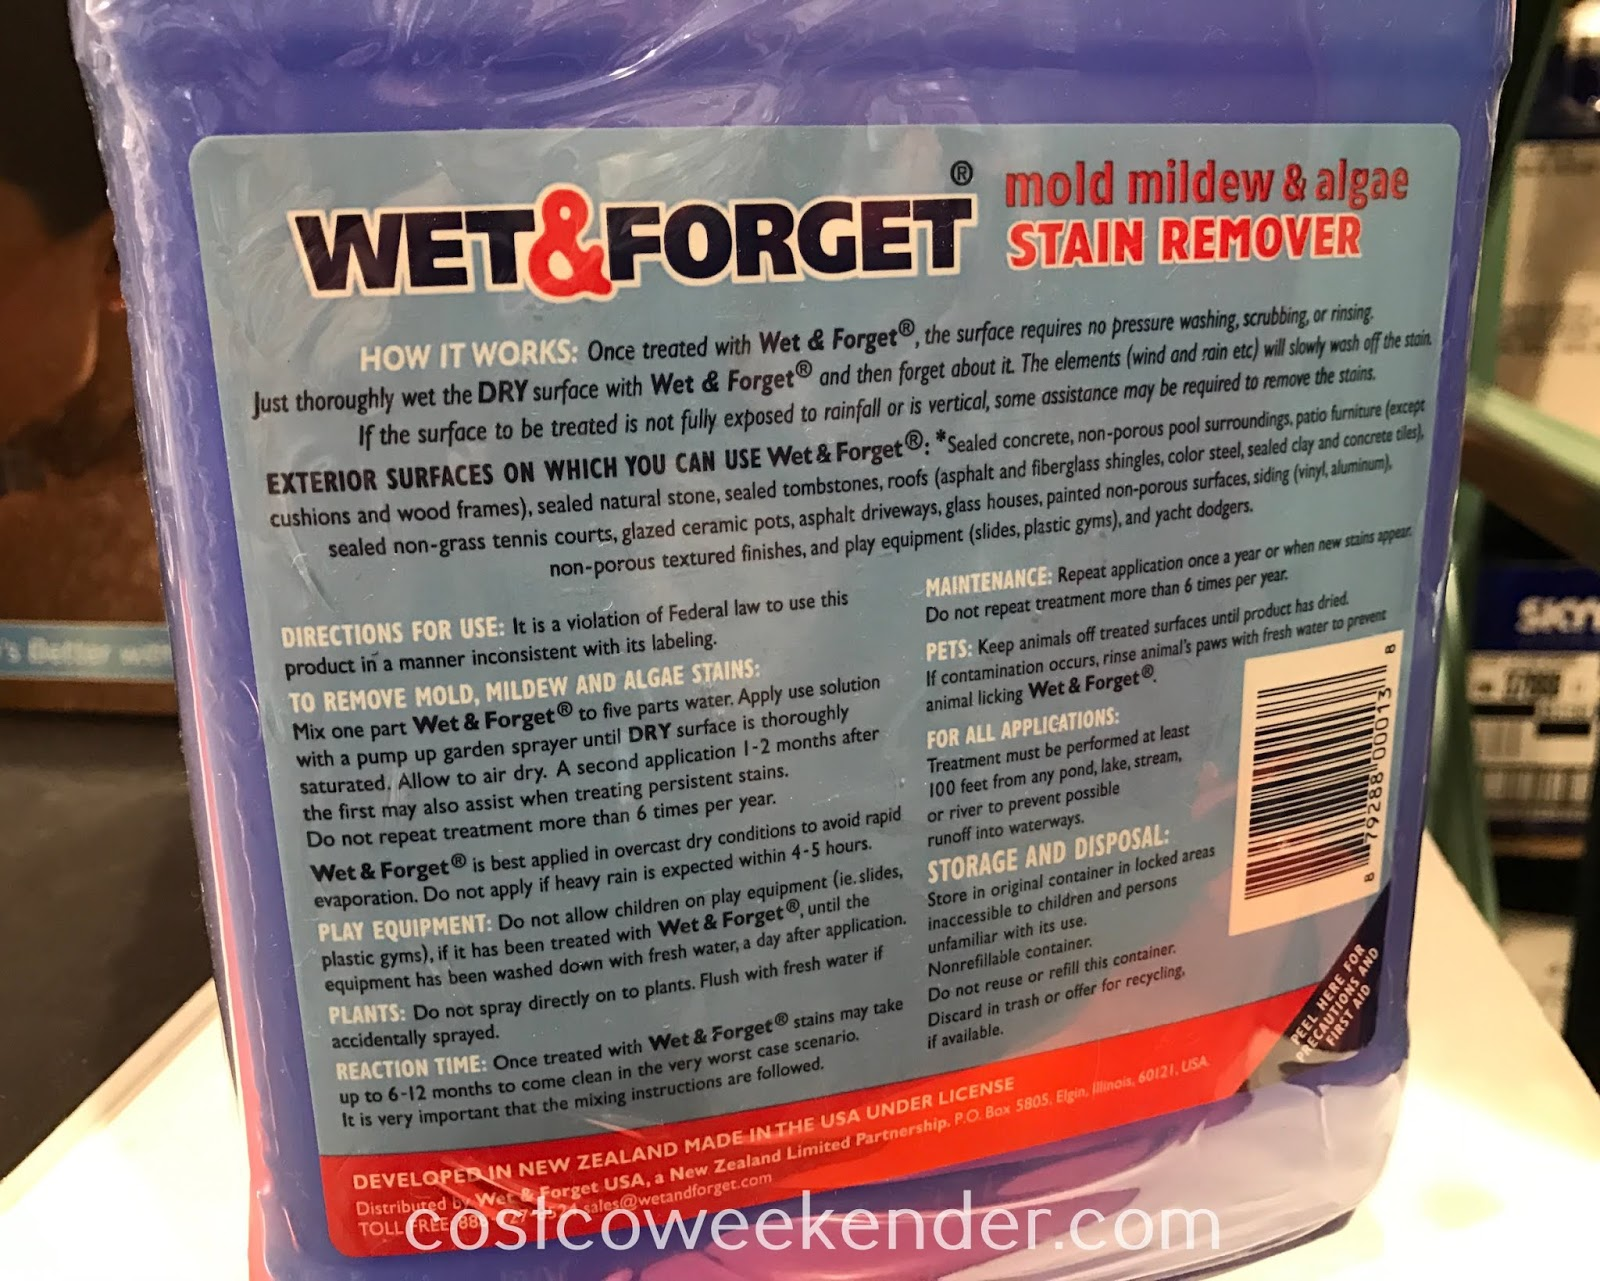 Costco 490976 - Wet & Forget Mold Mildew & Algae Stain Remover: great to have around your house